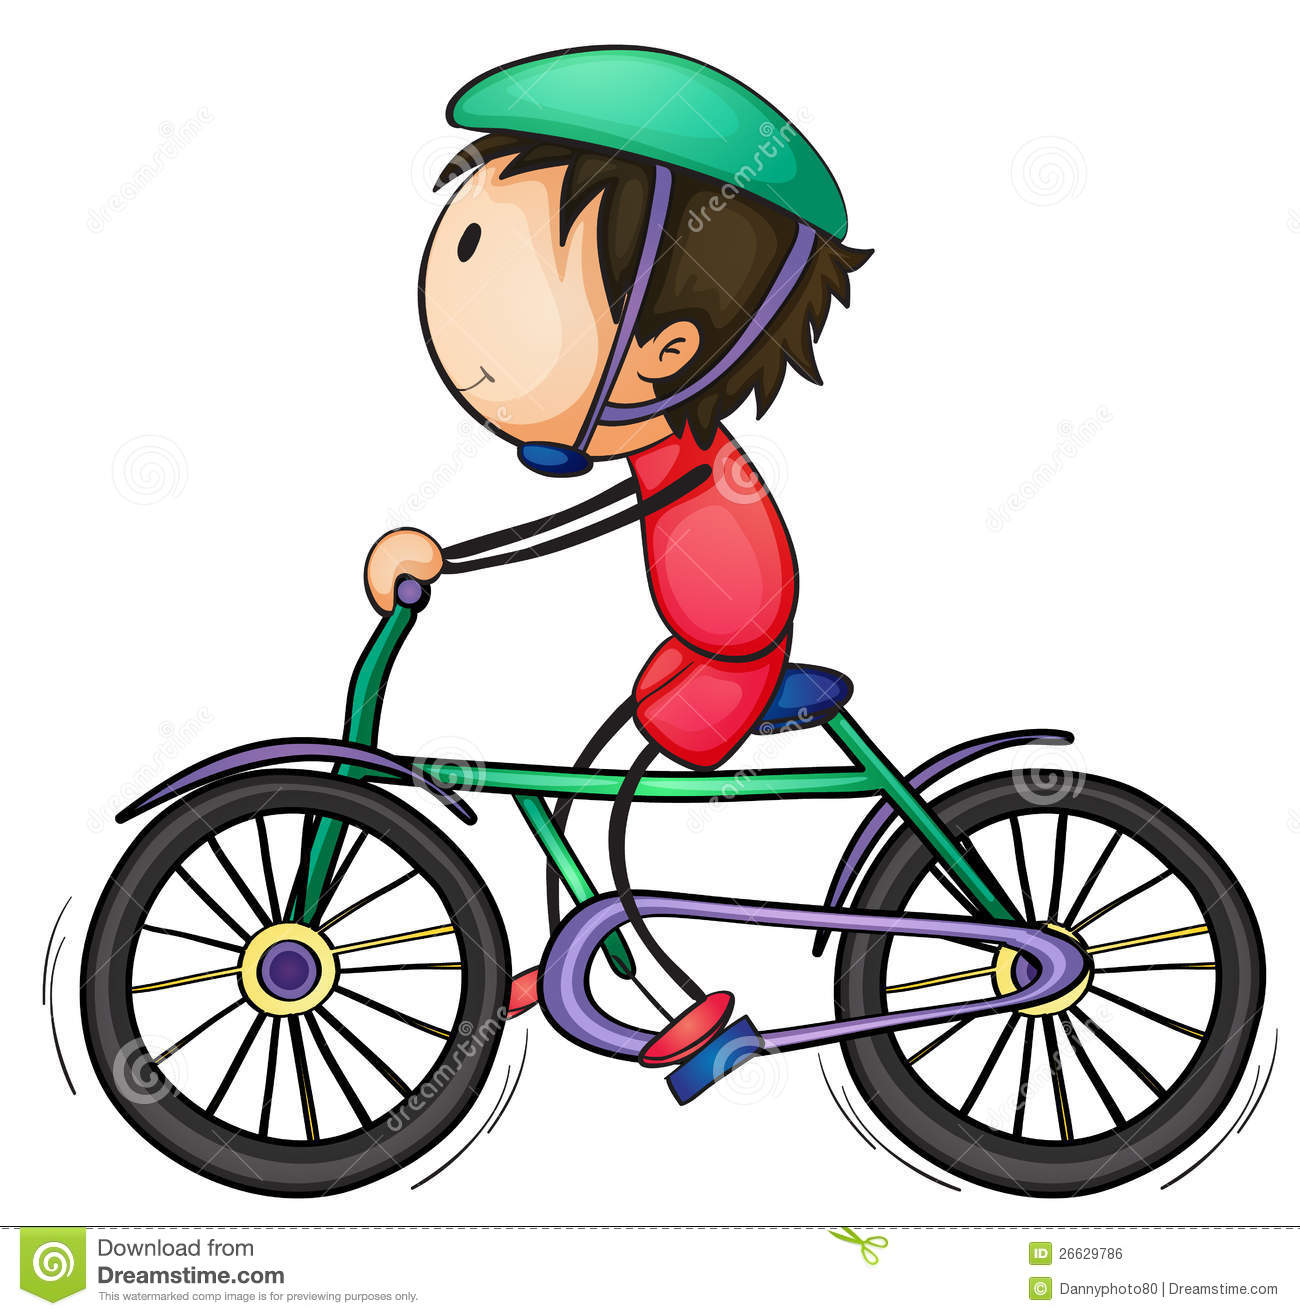 Boy And Bicycle Royalty Free Stock Image - Image: 26629786